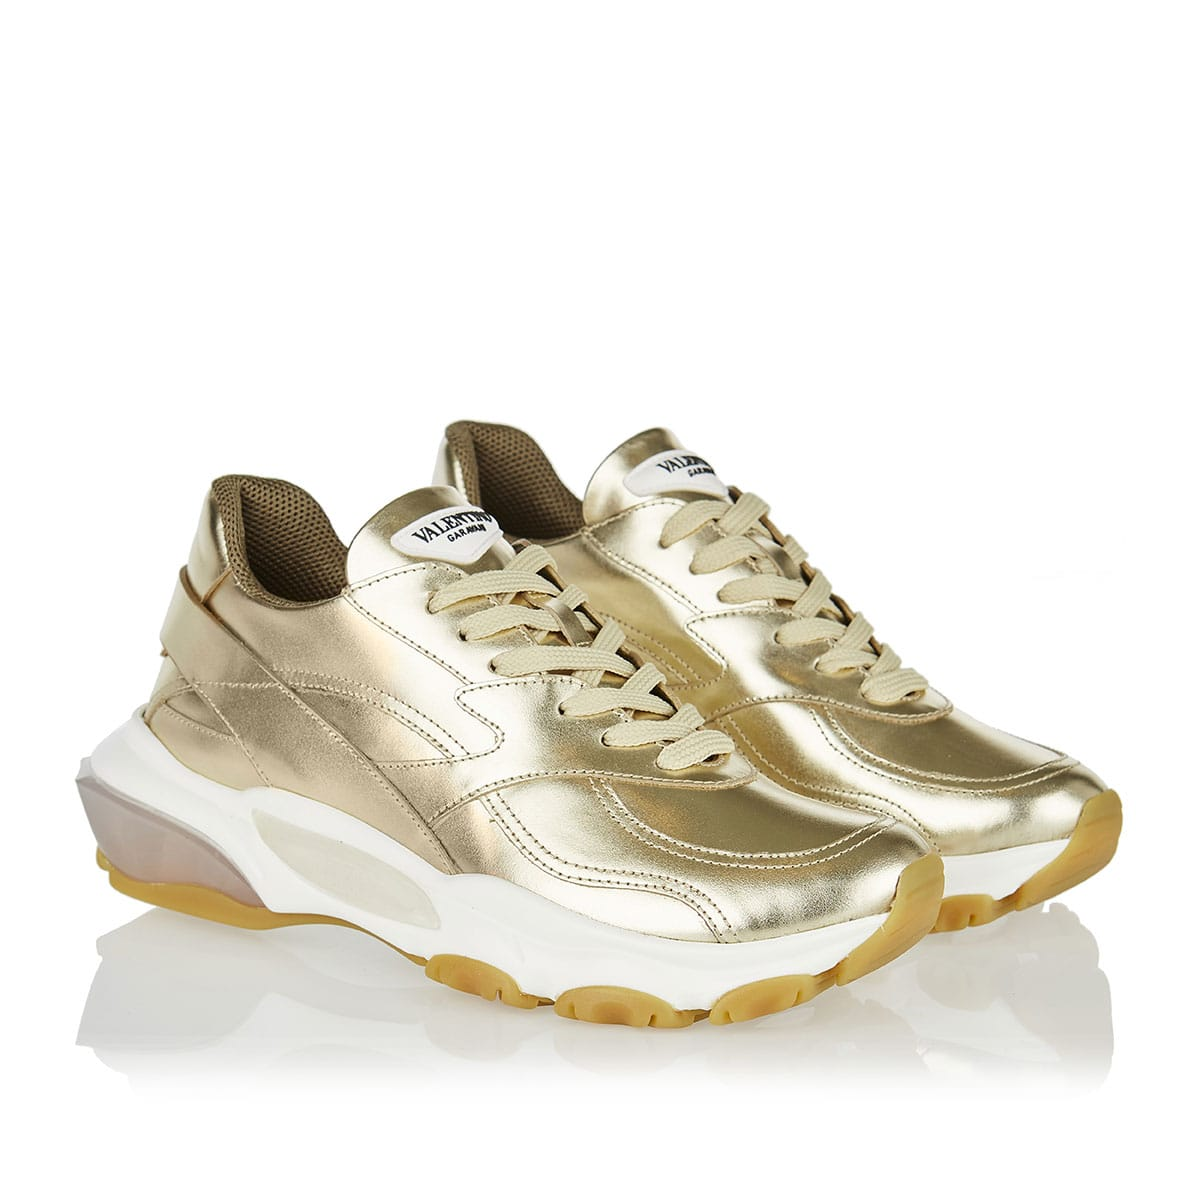 Bounce metallic leather sneakers